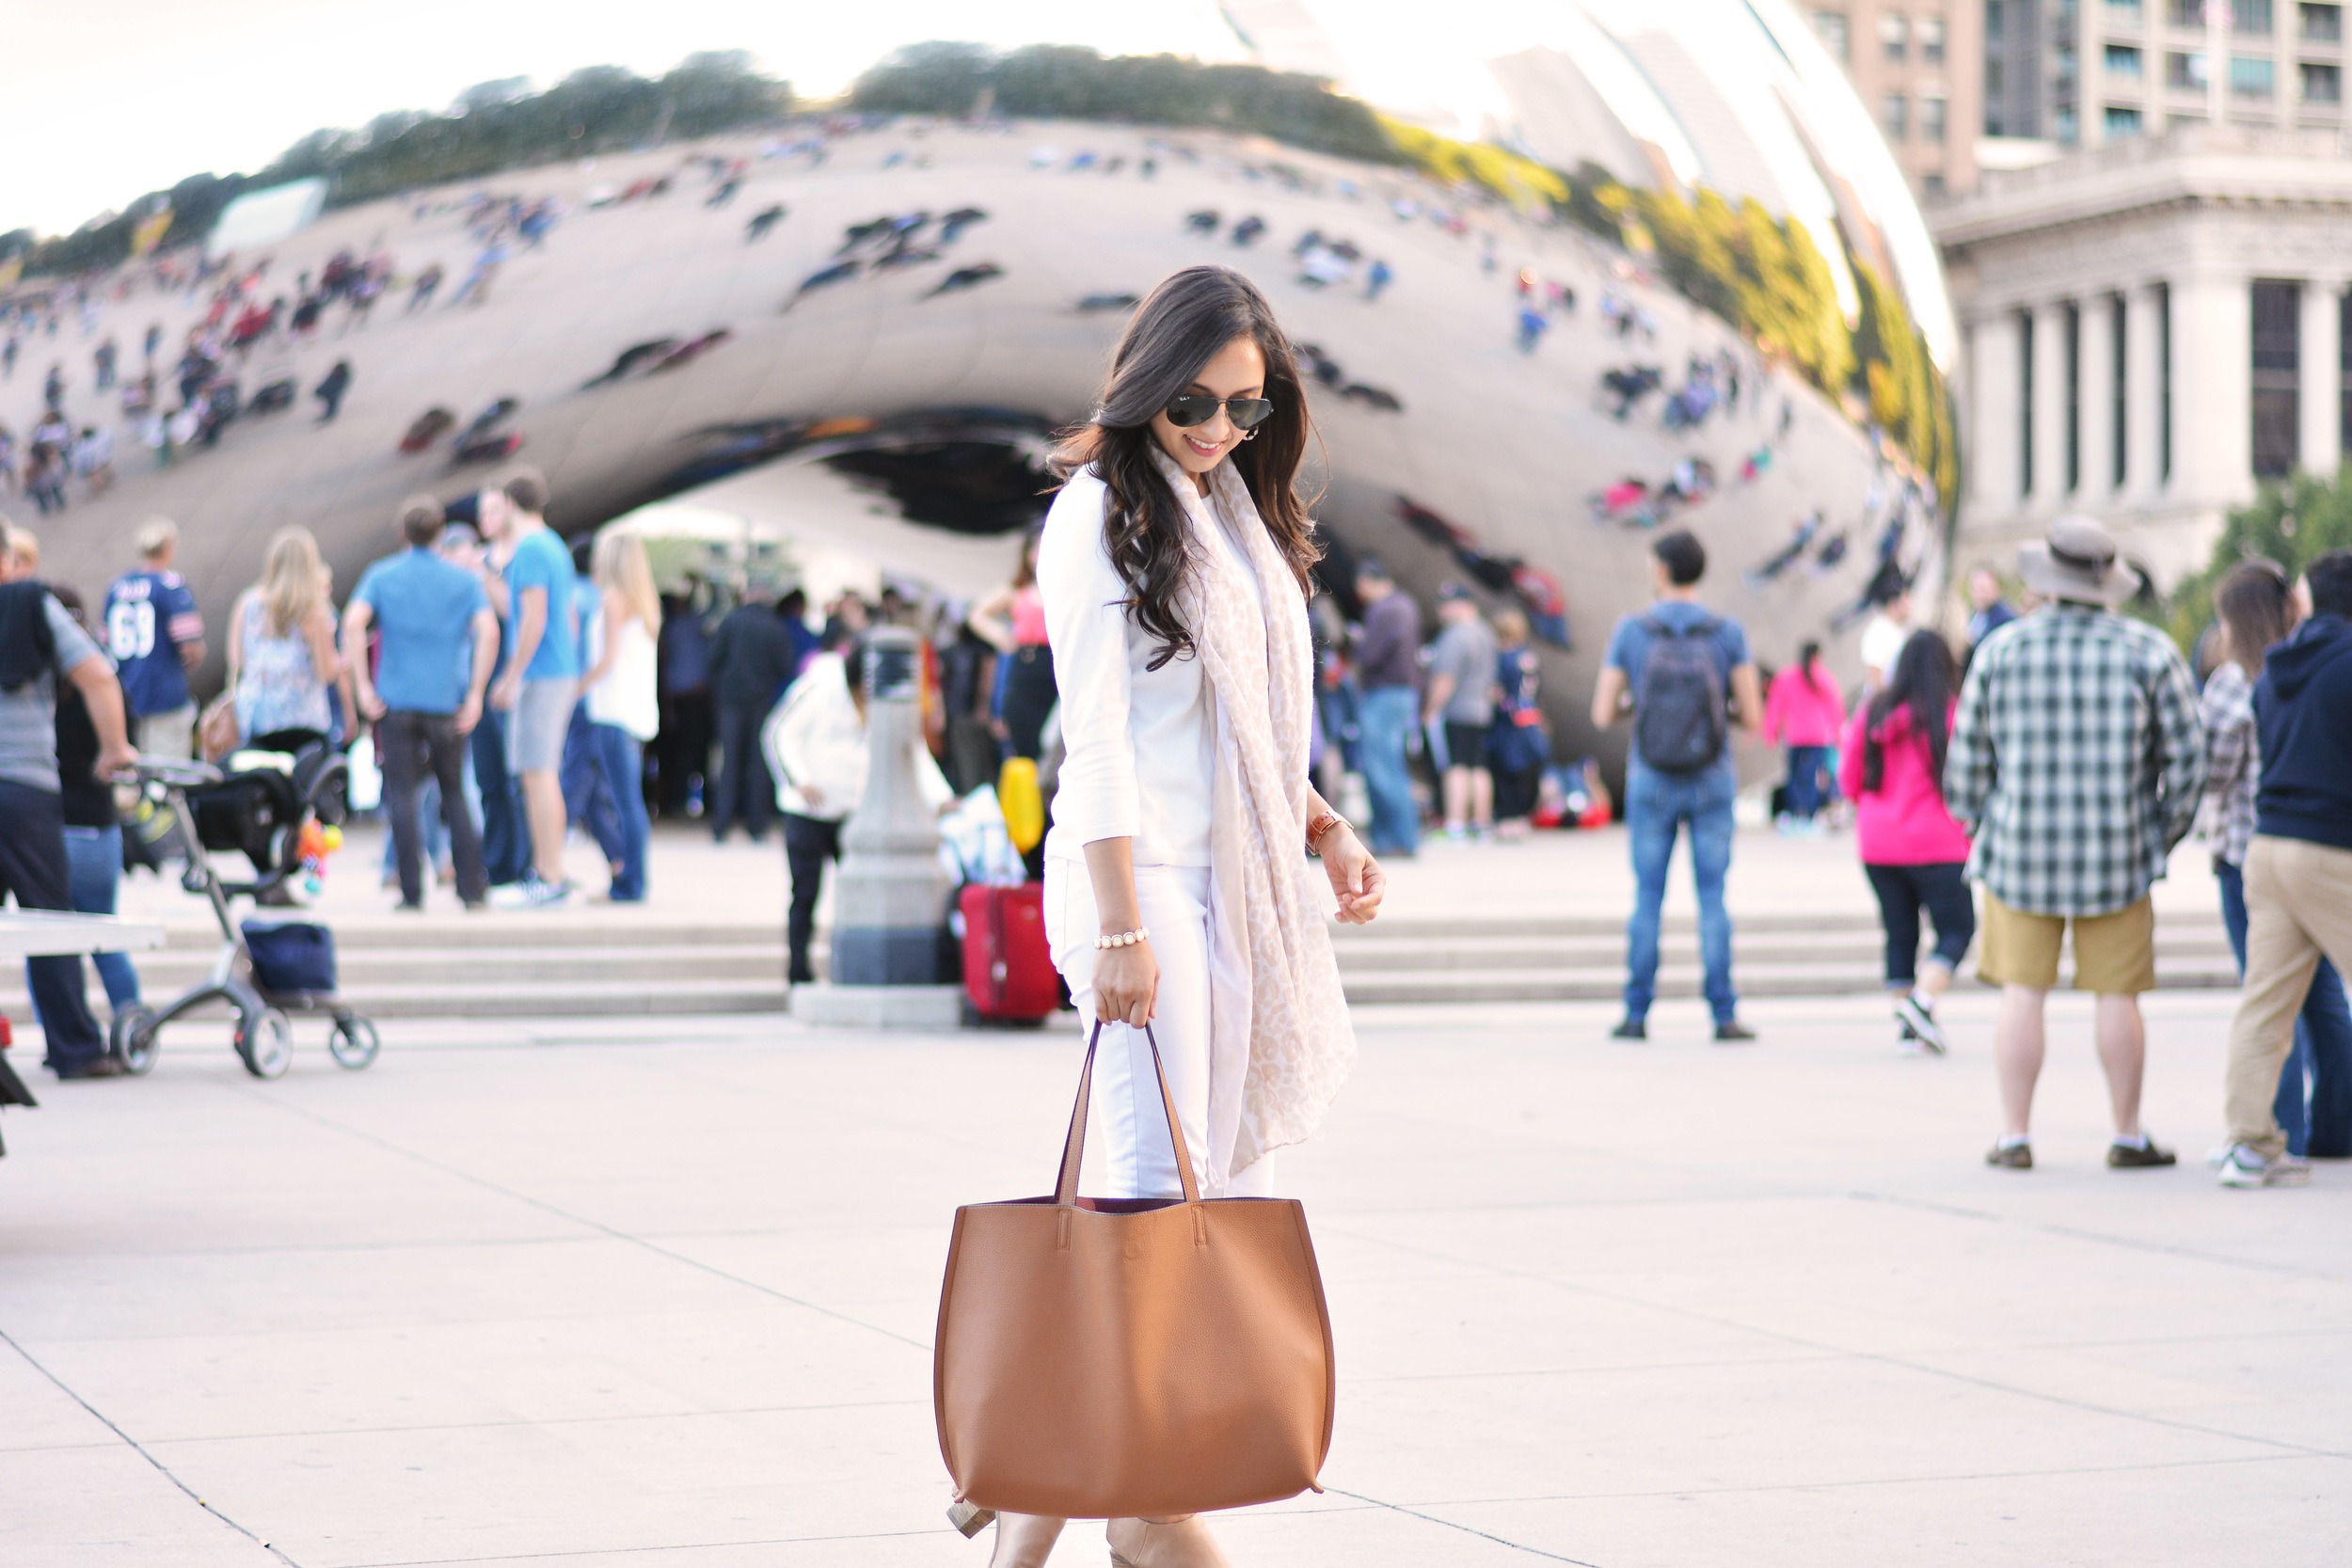 All white, fall fashion, neutrals, millennium park, the bean, chicago, white jeans, labor day, brown tote, leopard scarf, shopruche, old navy, the limited, rayon, nordstrom, justfab